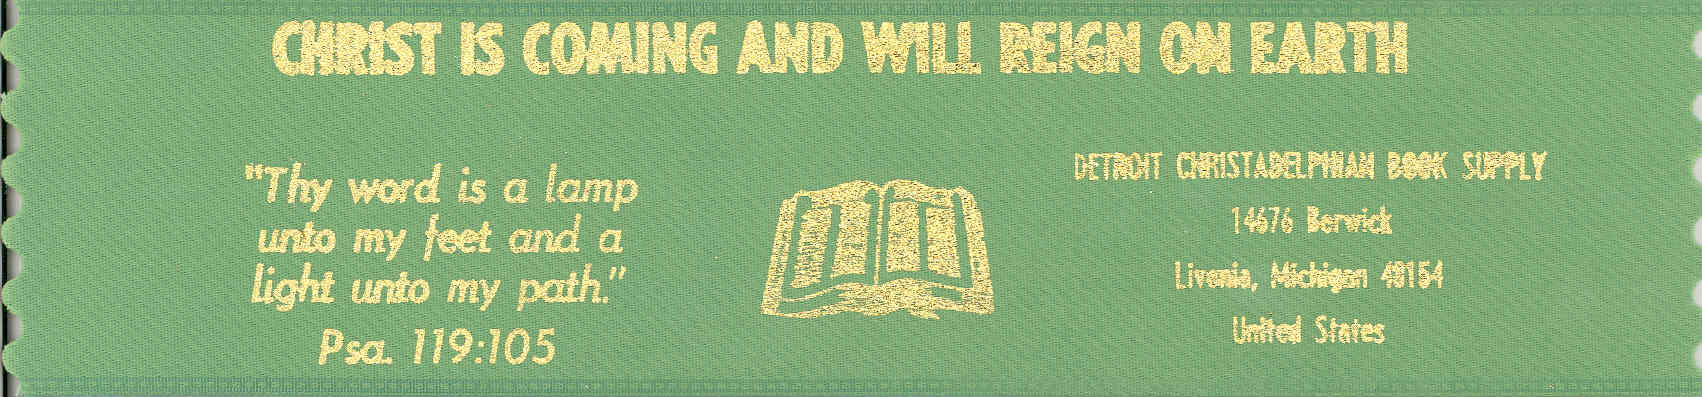 Christ is coming and will reign on earth ~ green bookmark